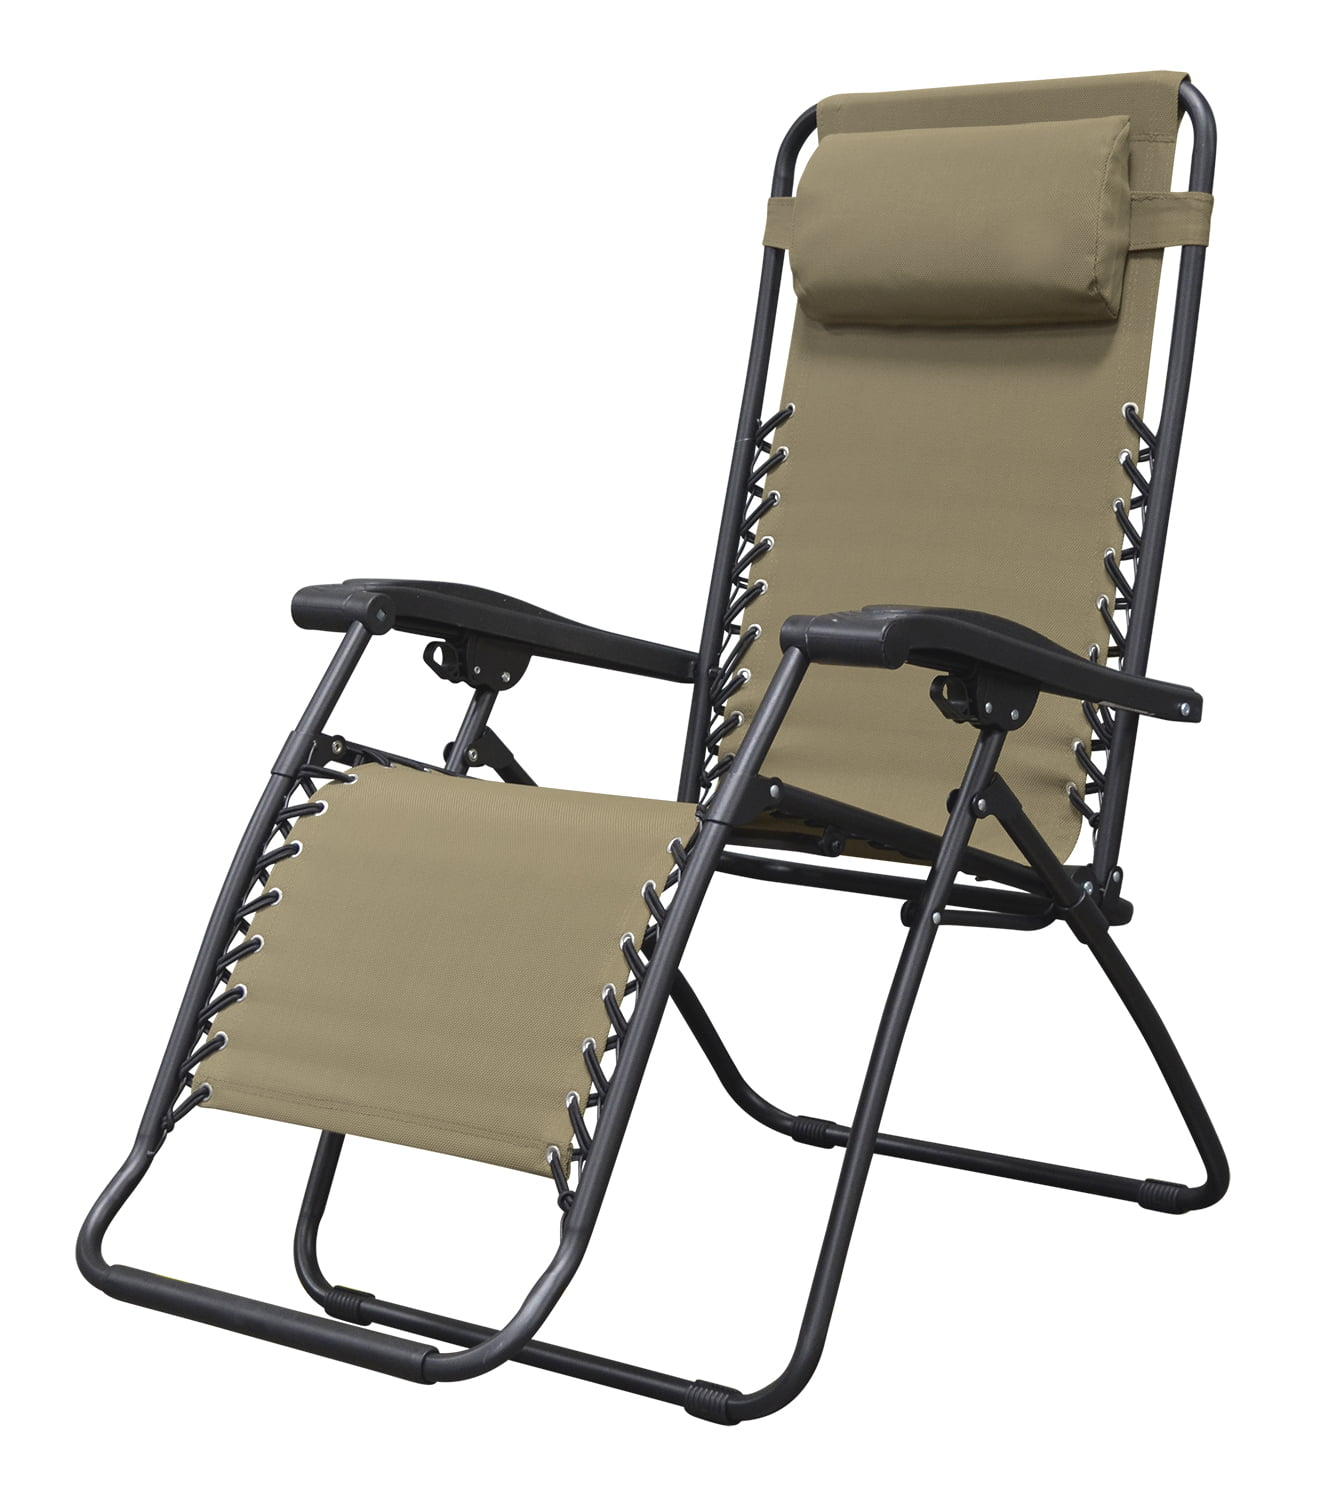 Caravan Sports Zero Gravity Chair Multiple Colors Walmart